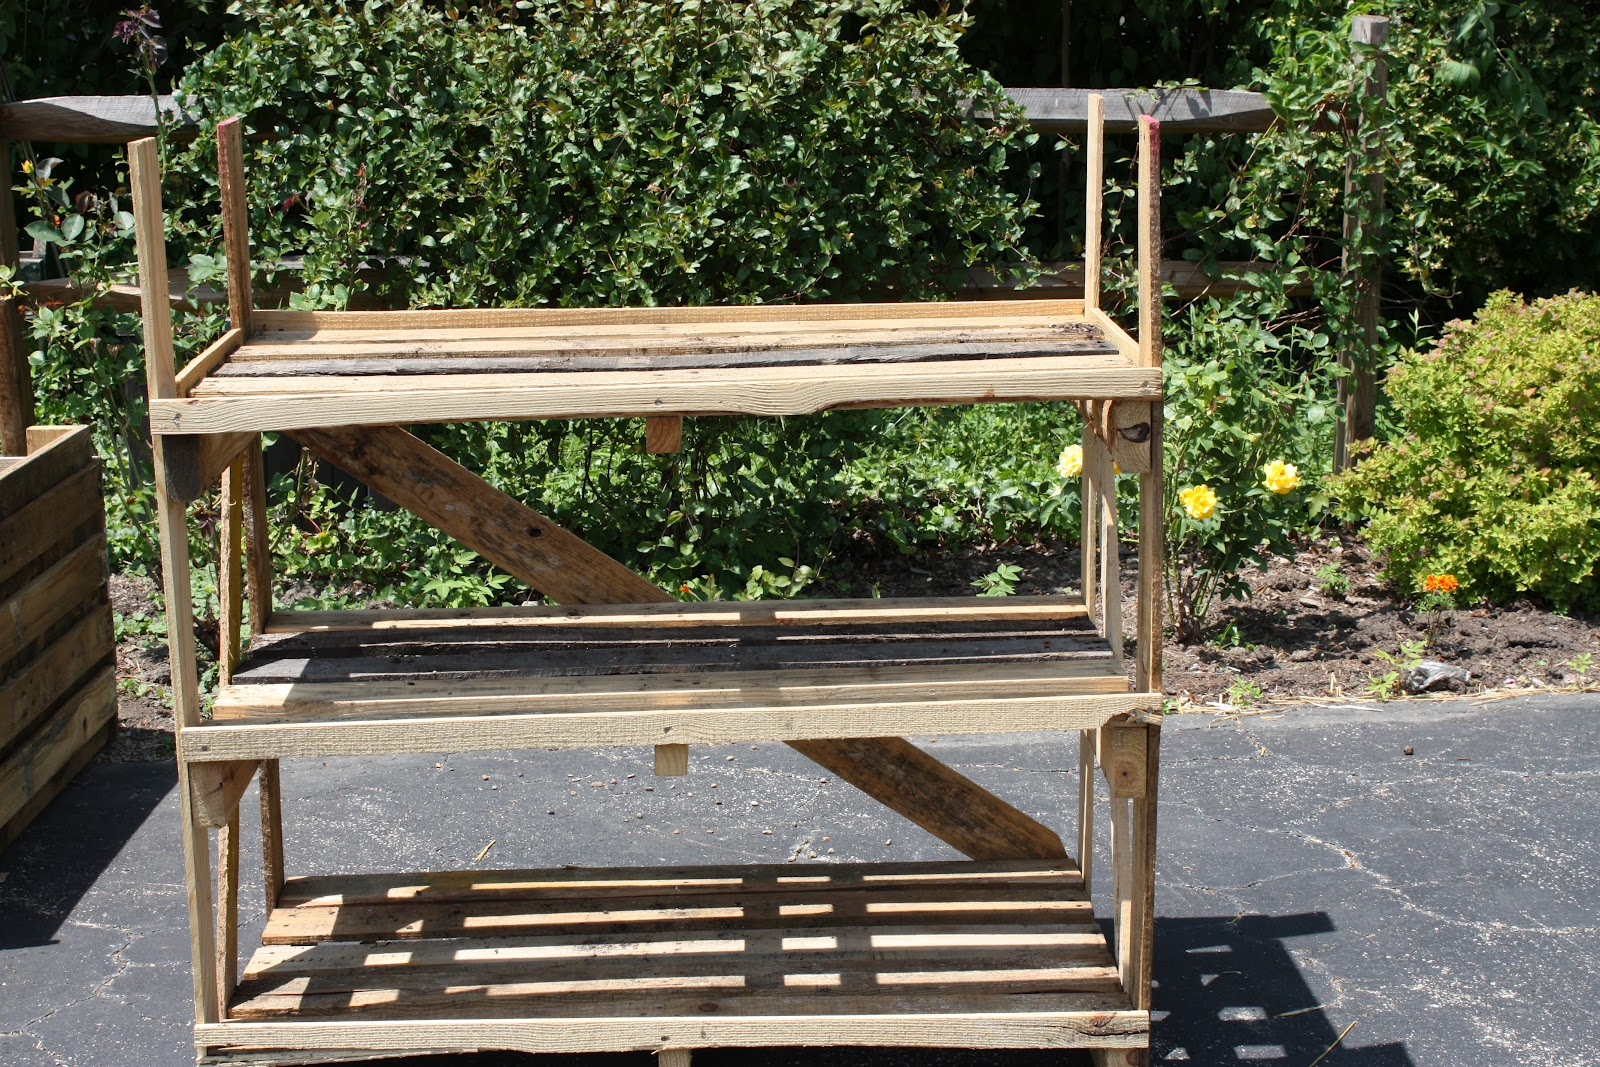 Creating With The J's: Pallet planters and trellis